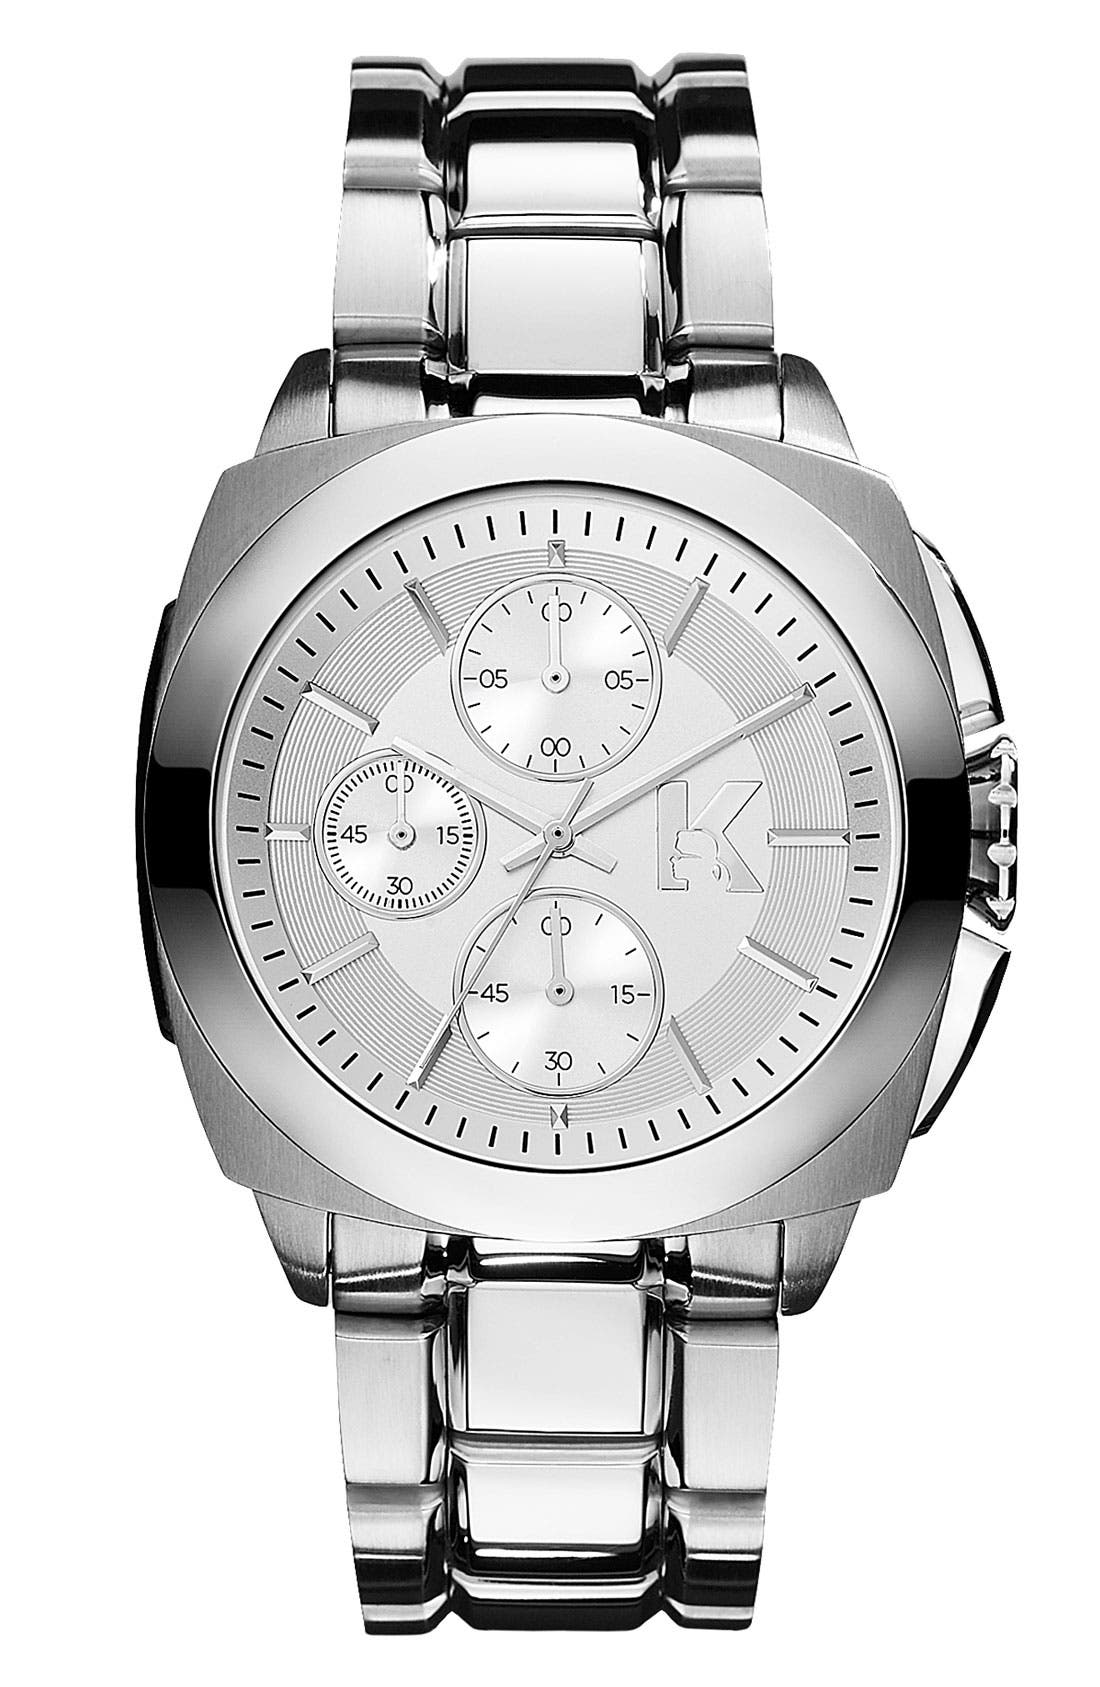 Main Image - KARL LAGERFELD 'Keeper' Chronograph Bracelet Watch, 40mm